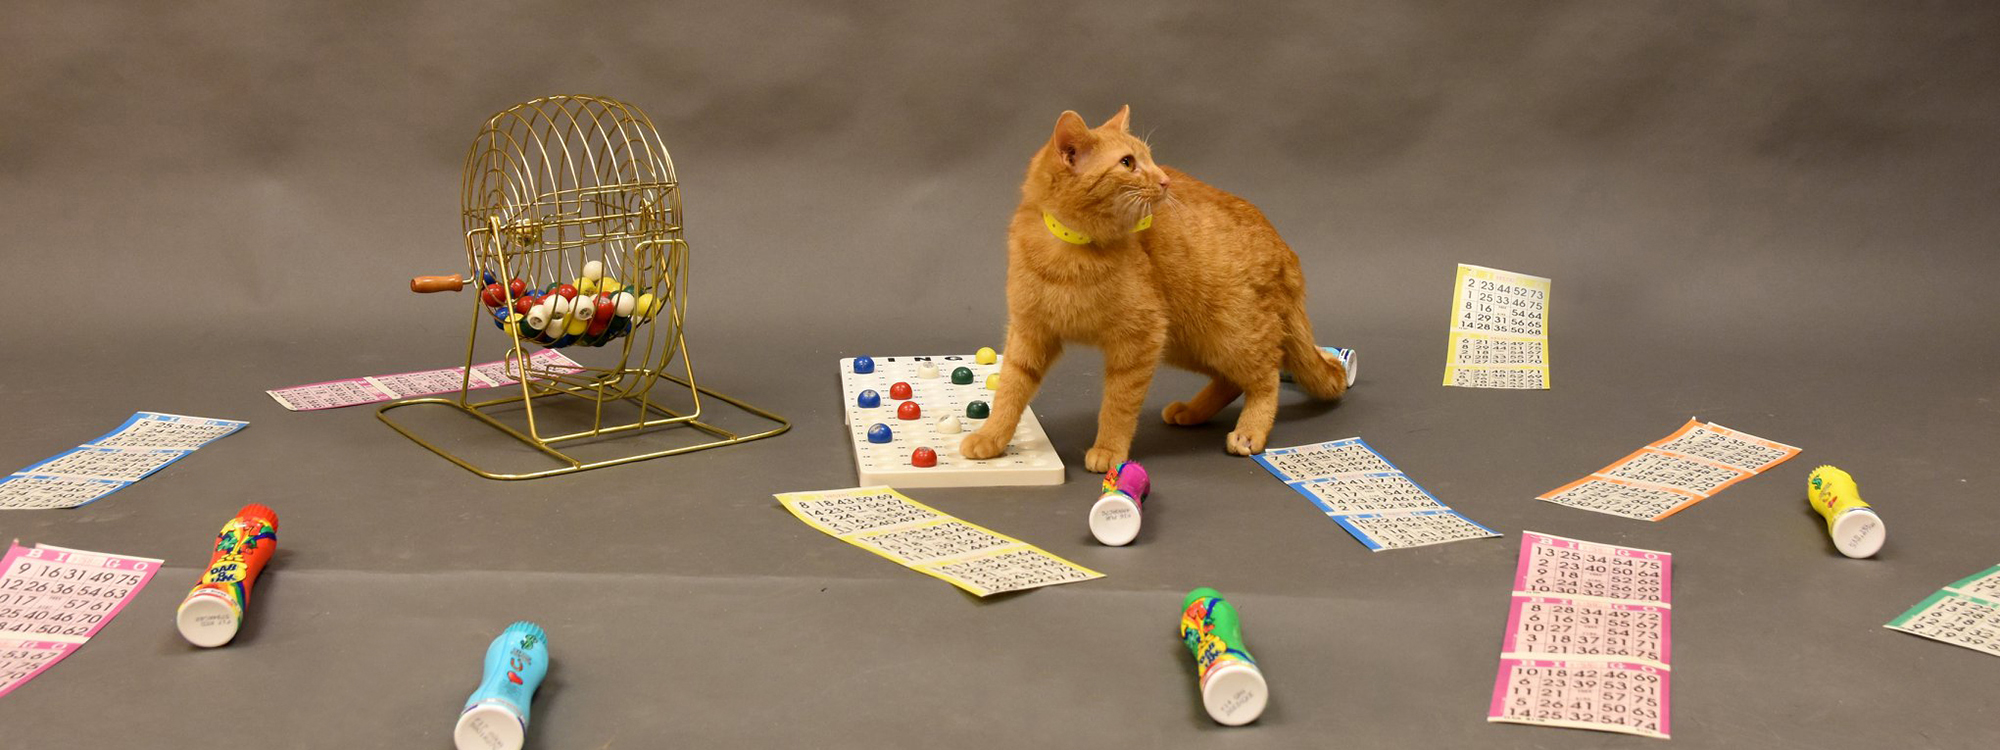 Orange cat among bingo boards and markers